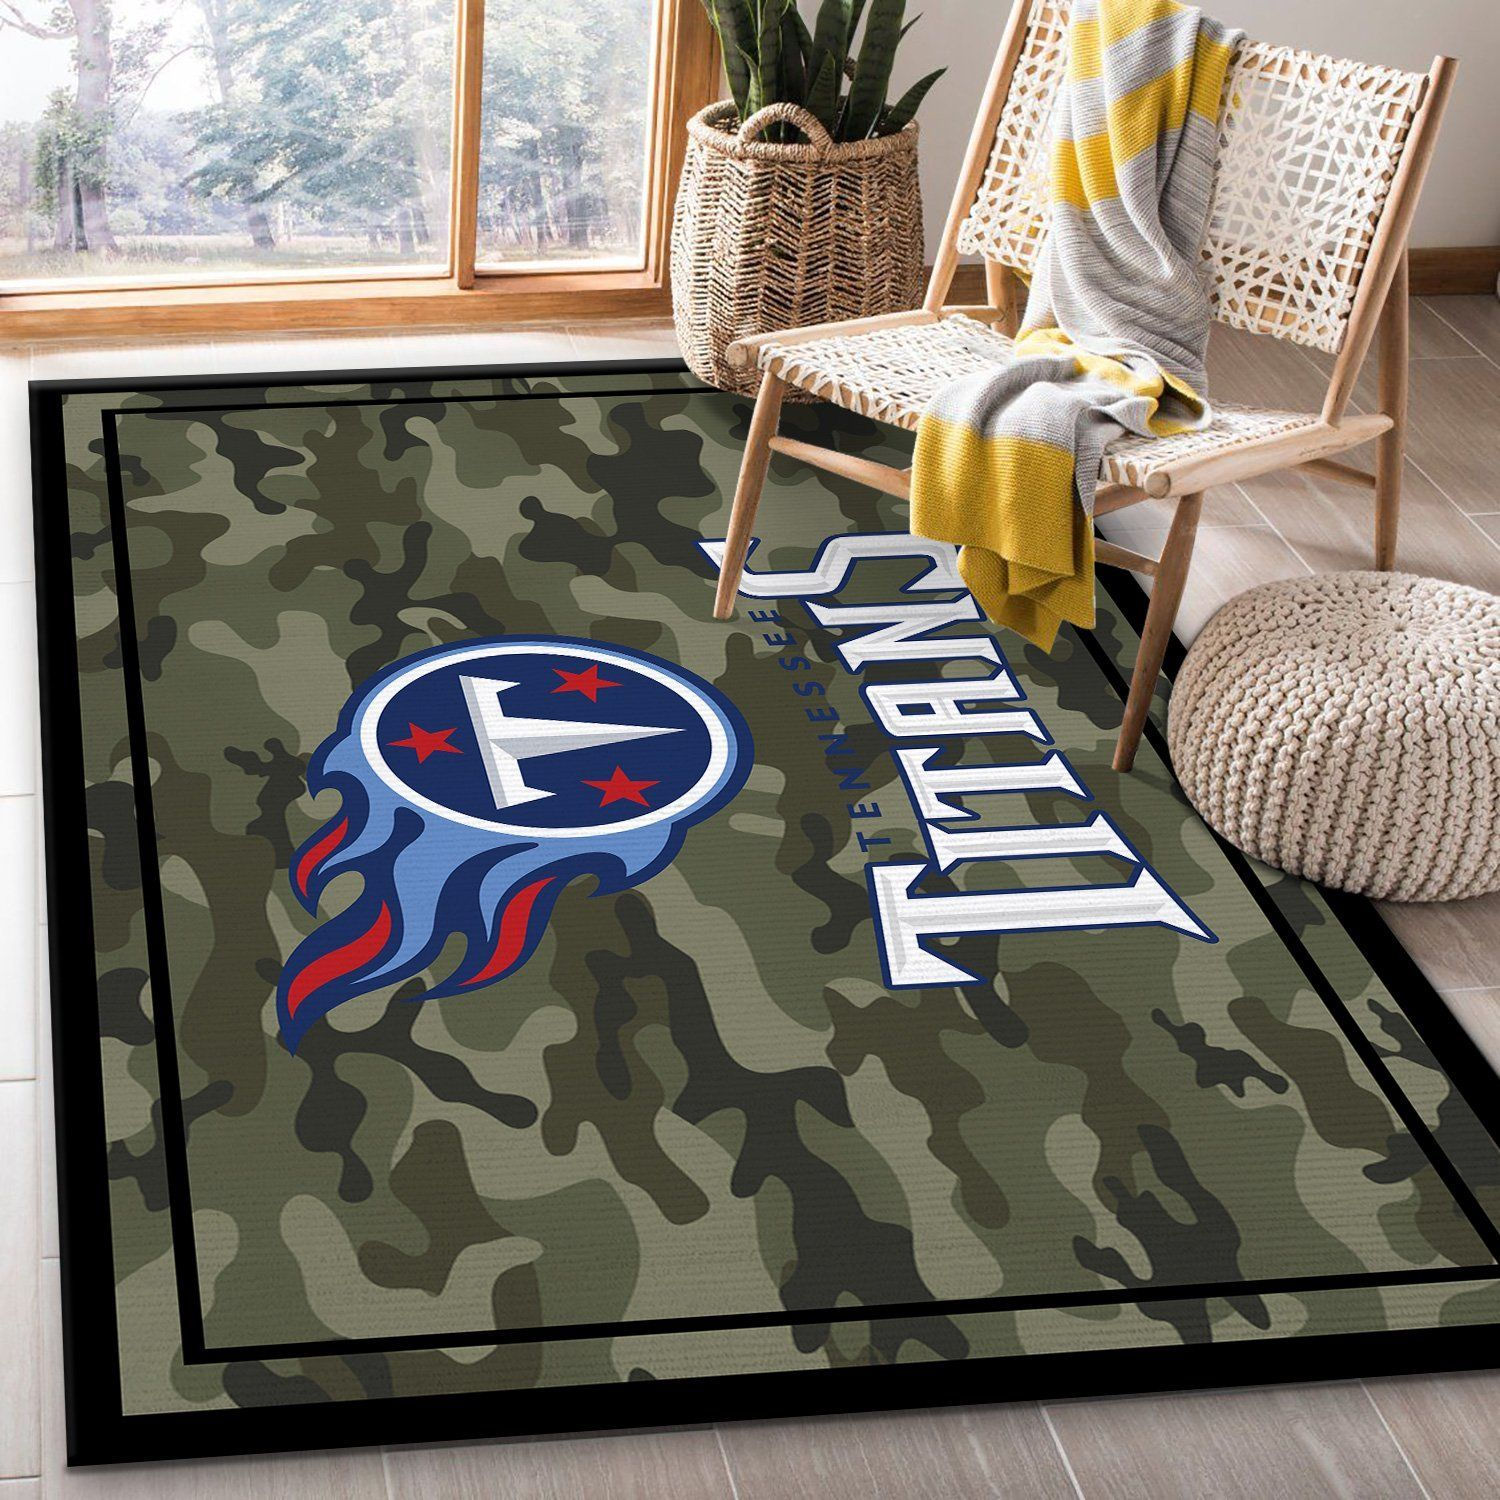 Tennessee Titans NFL Rug